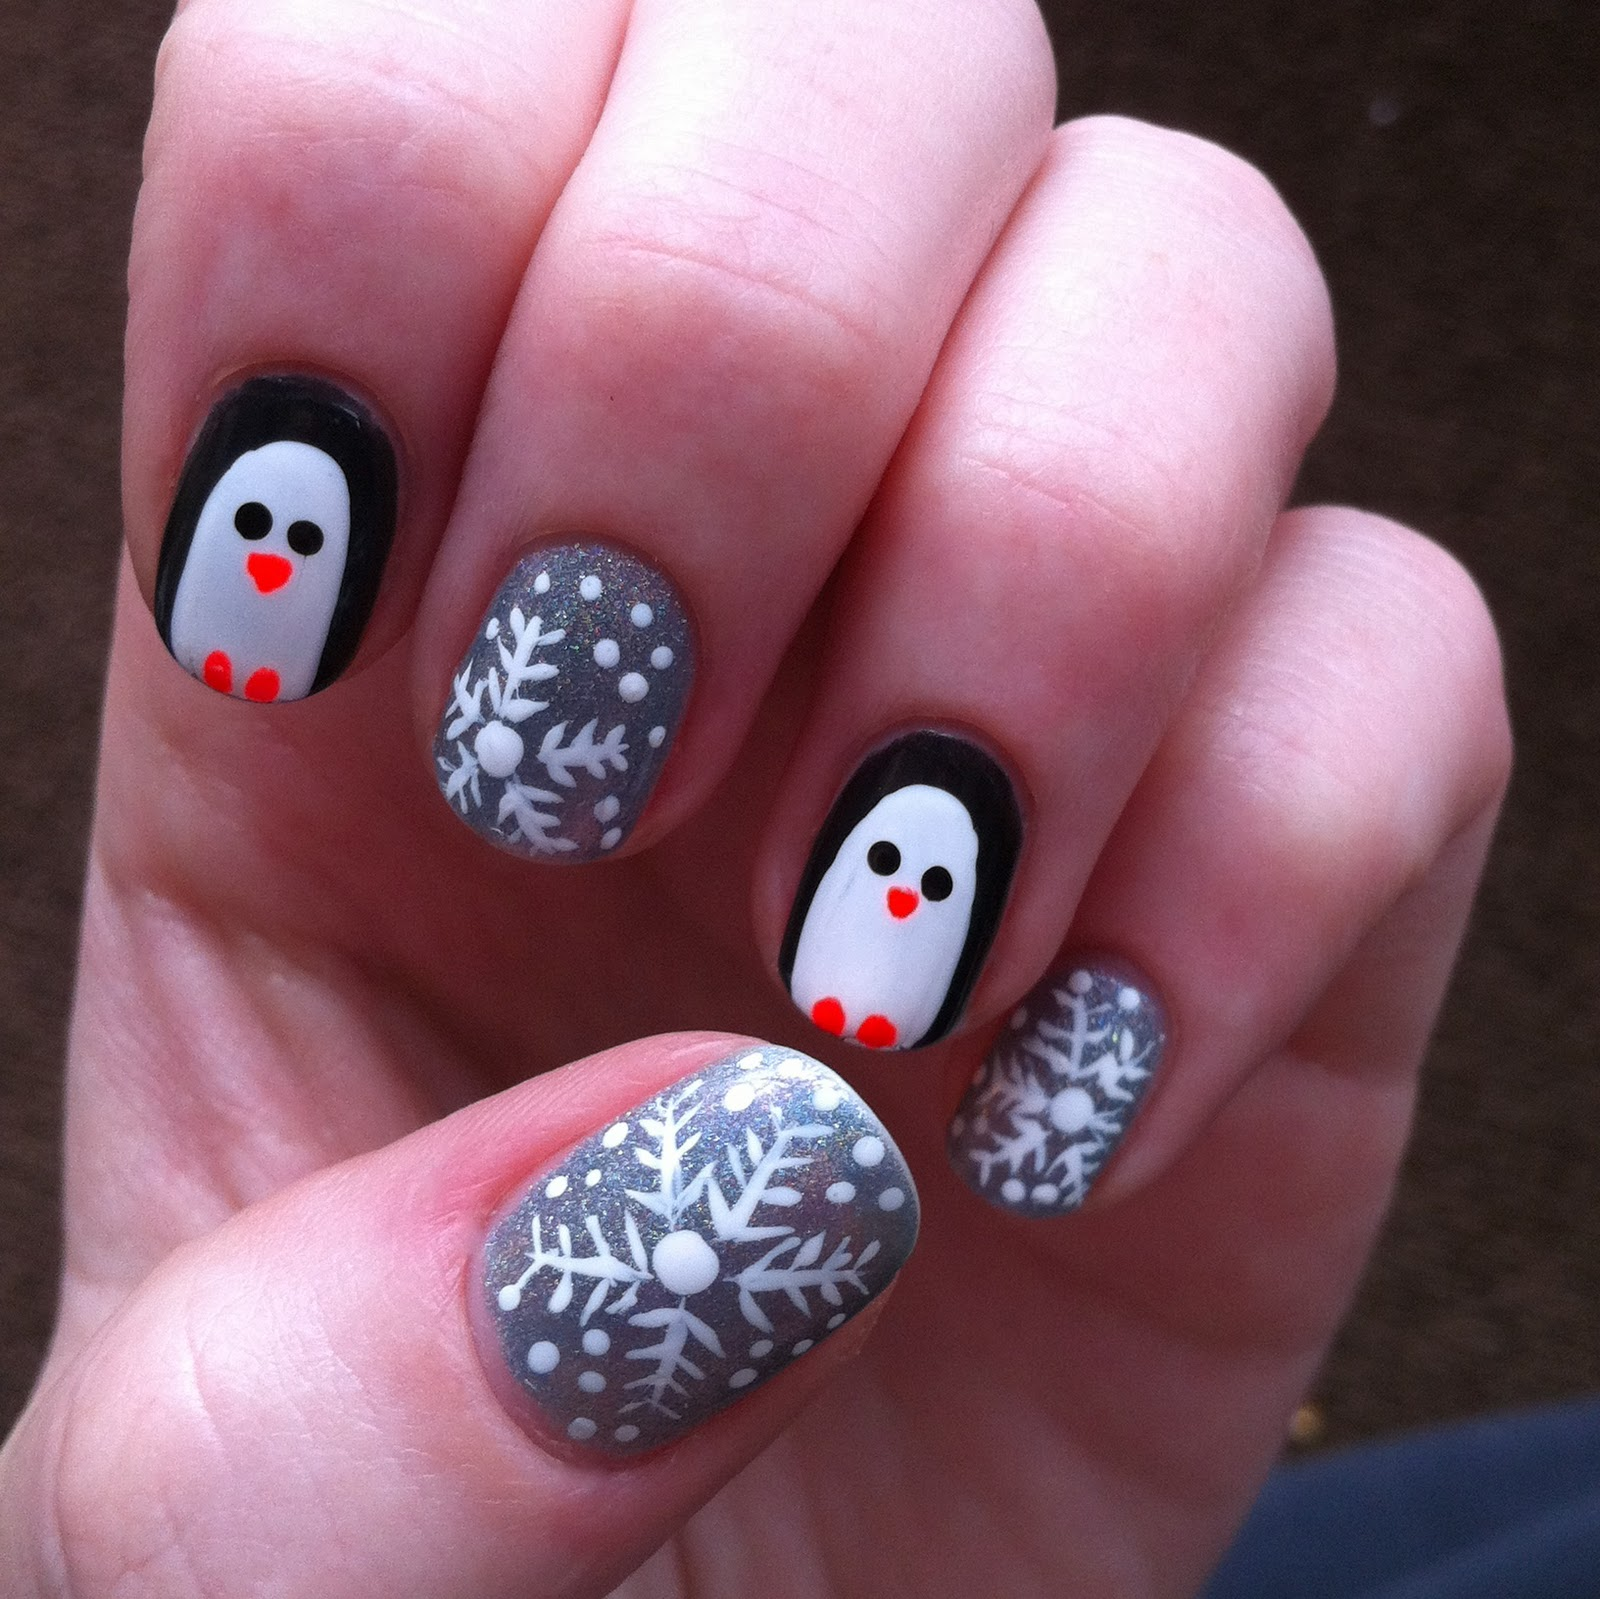 Penguin Nail Art Designs: Beauty School Dropouts: Penguins And Holographic